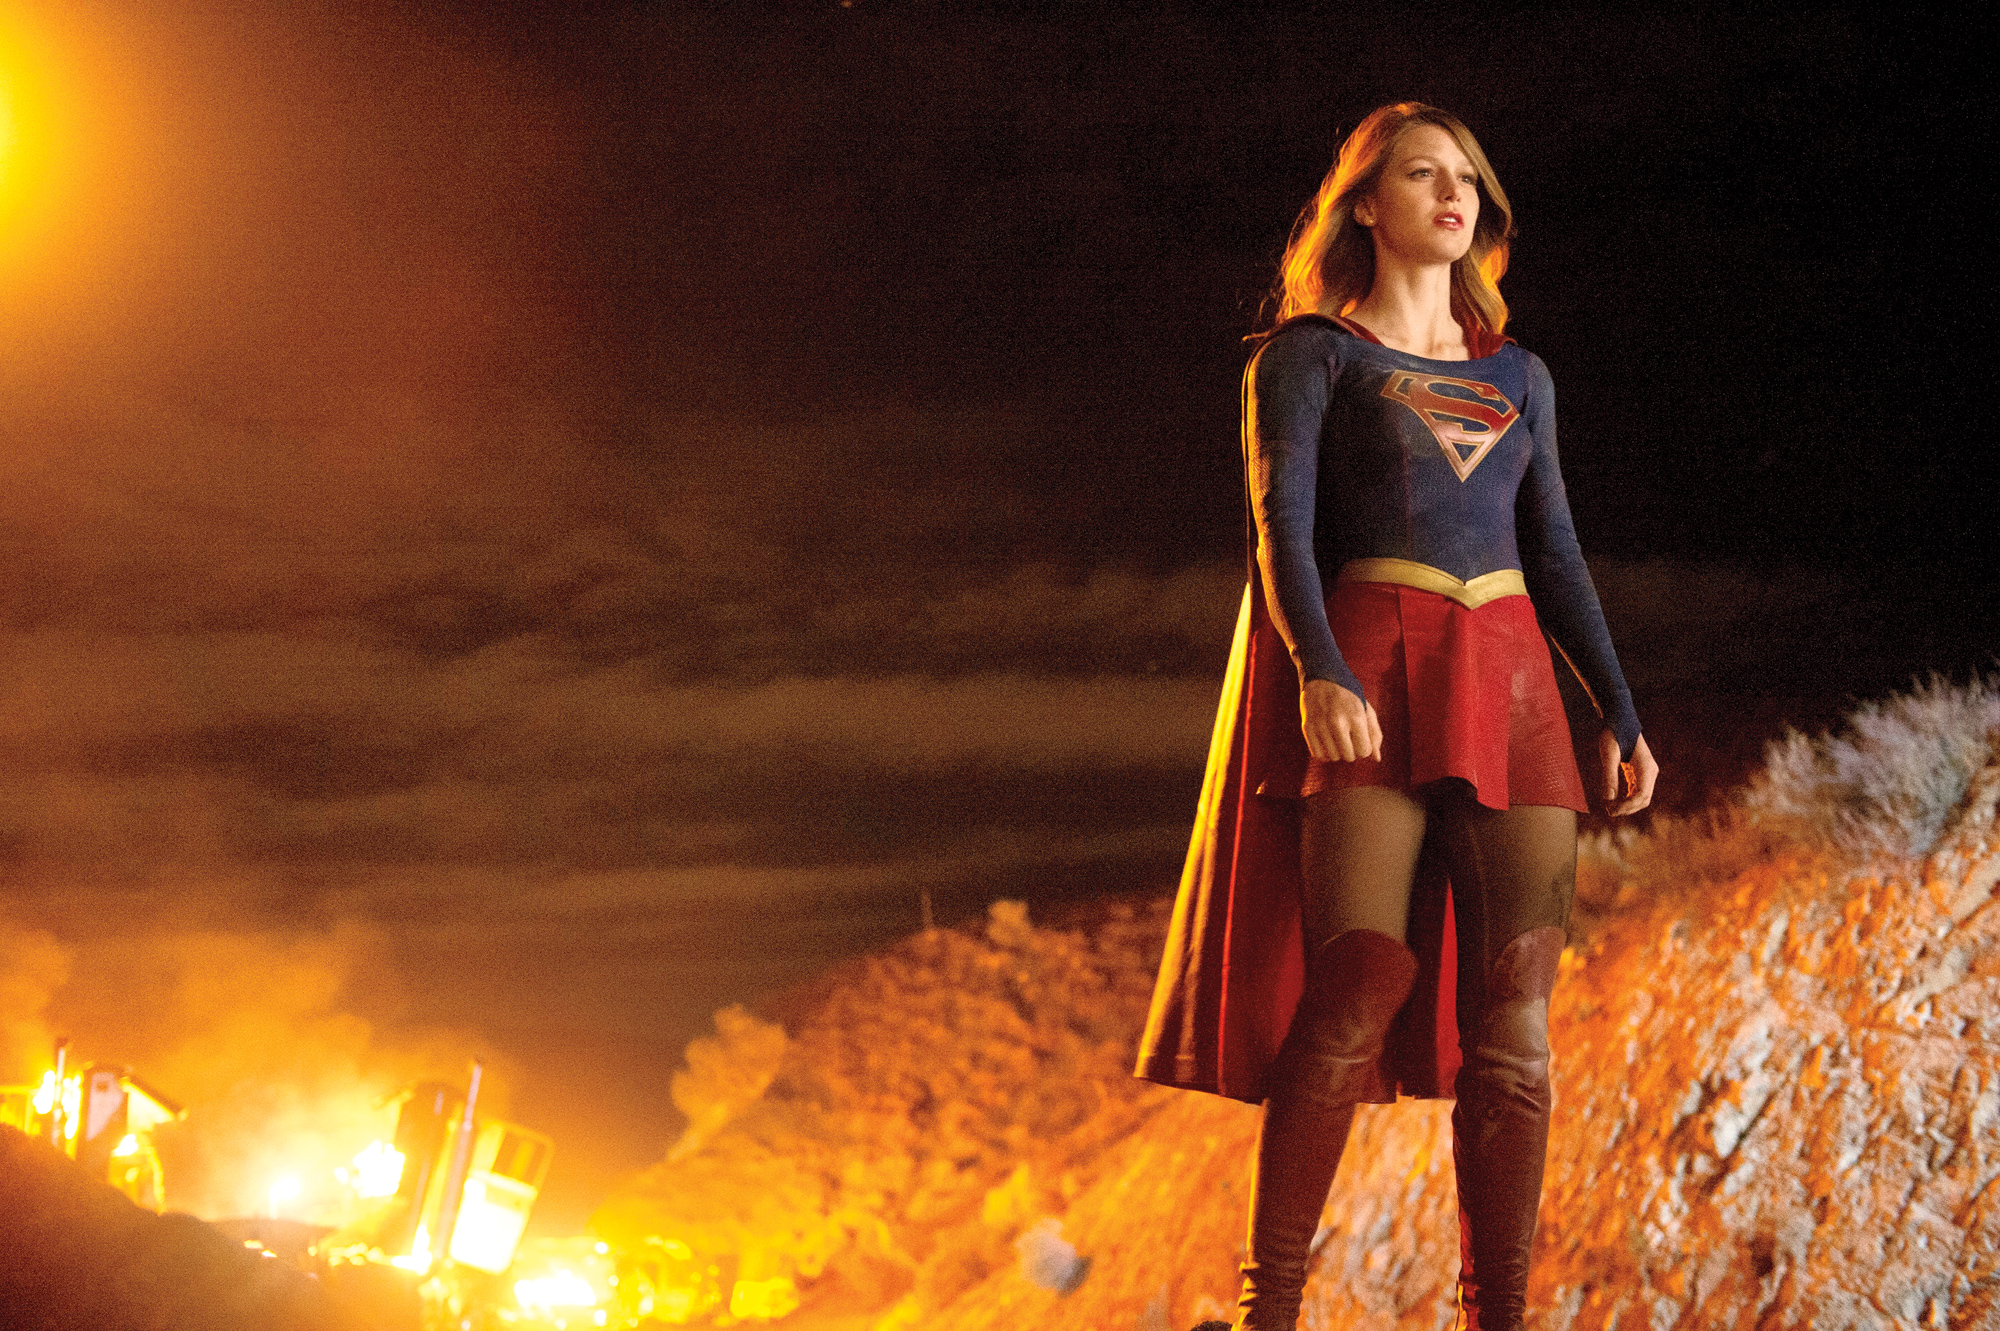 Two female superheroes on TV at the same time is practically revolutionary